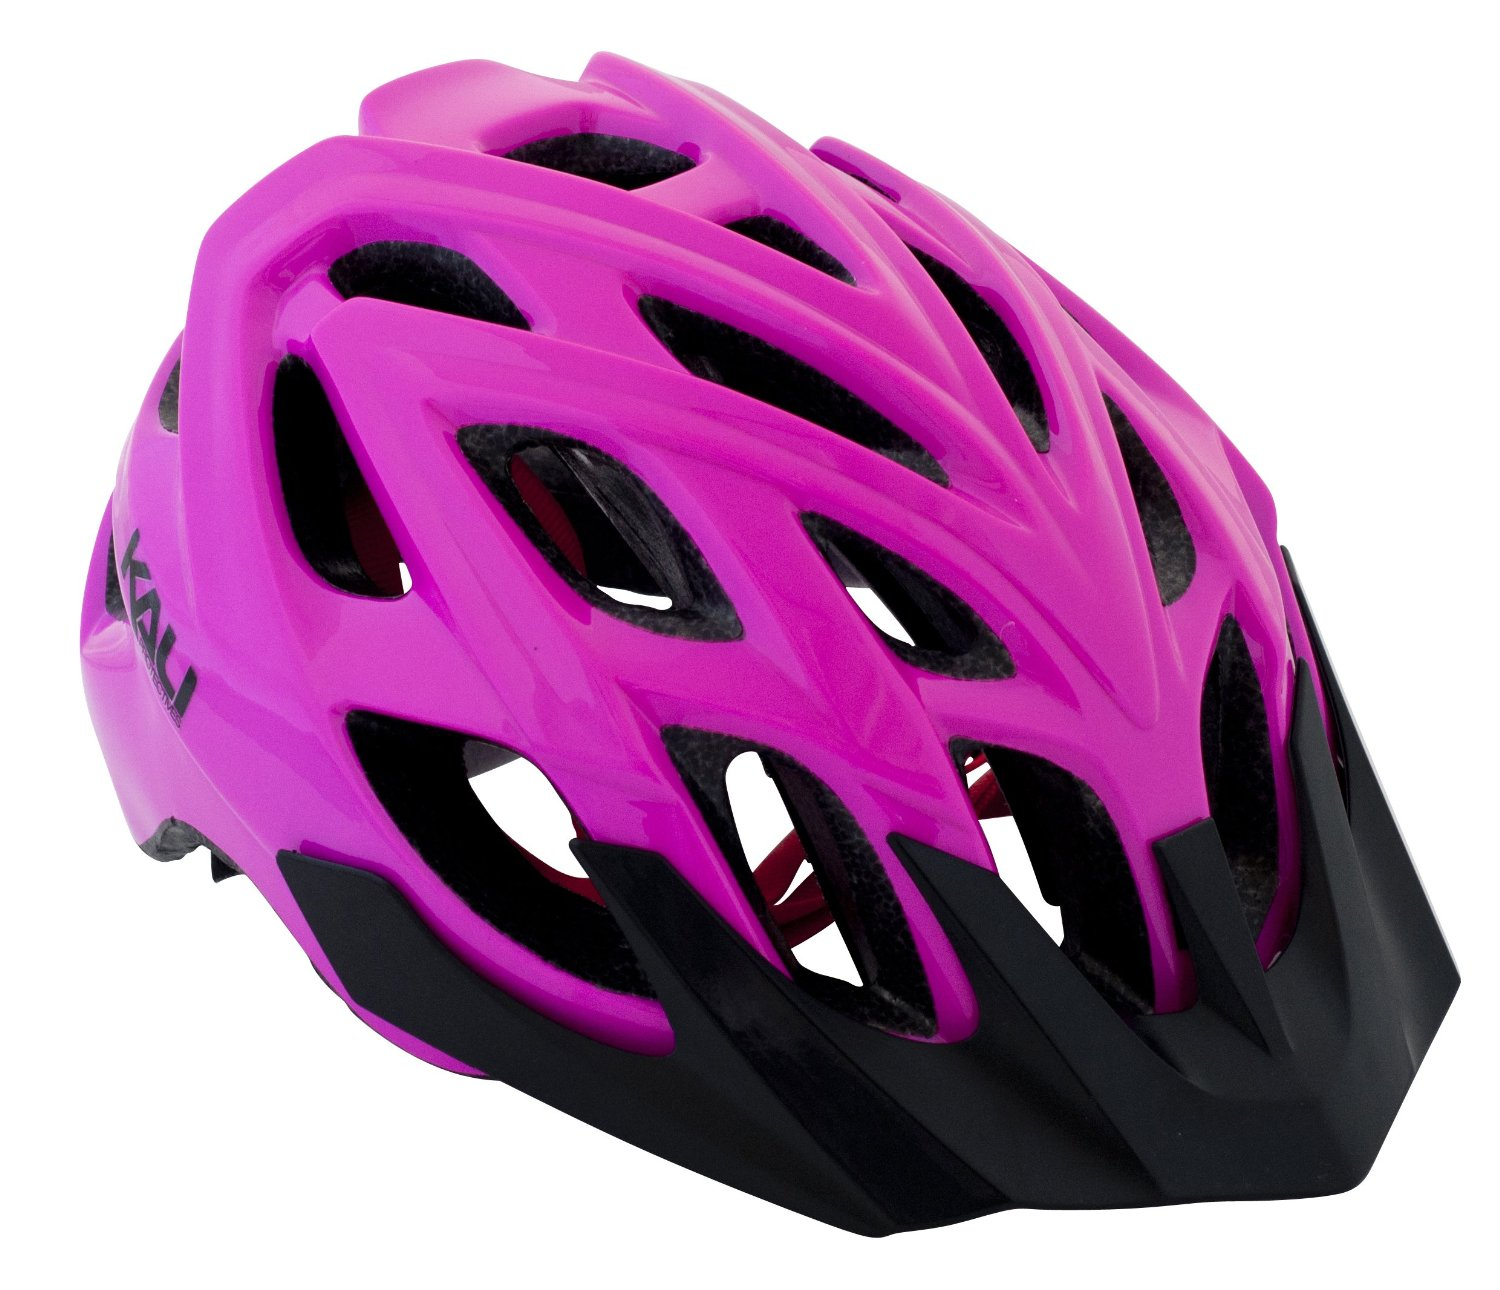 Pink Kali Protectives Bicycle Helmets